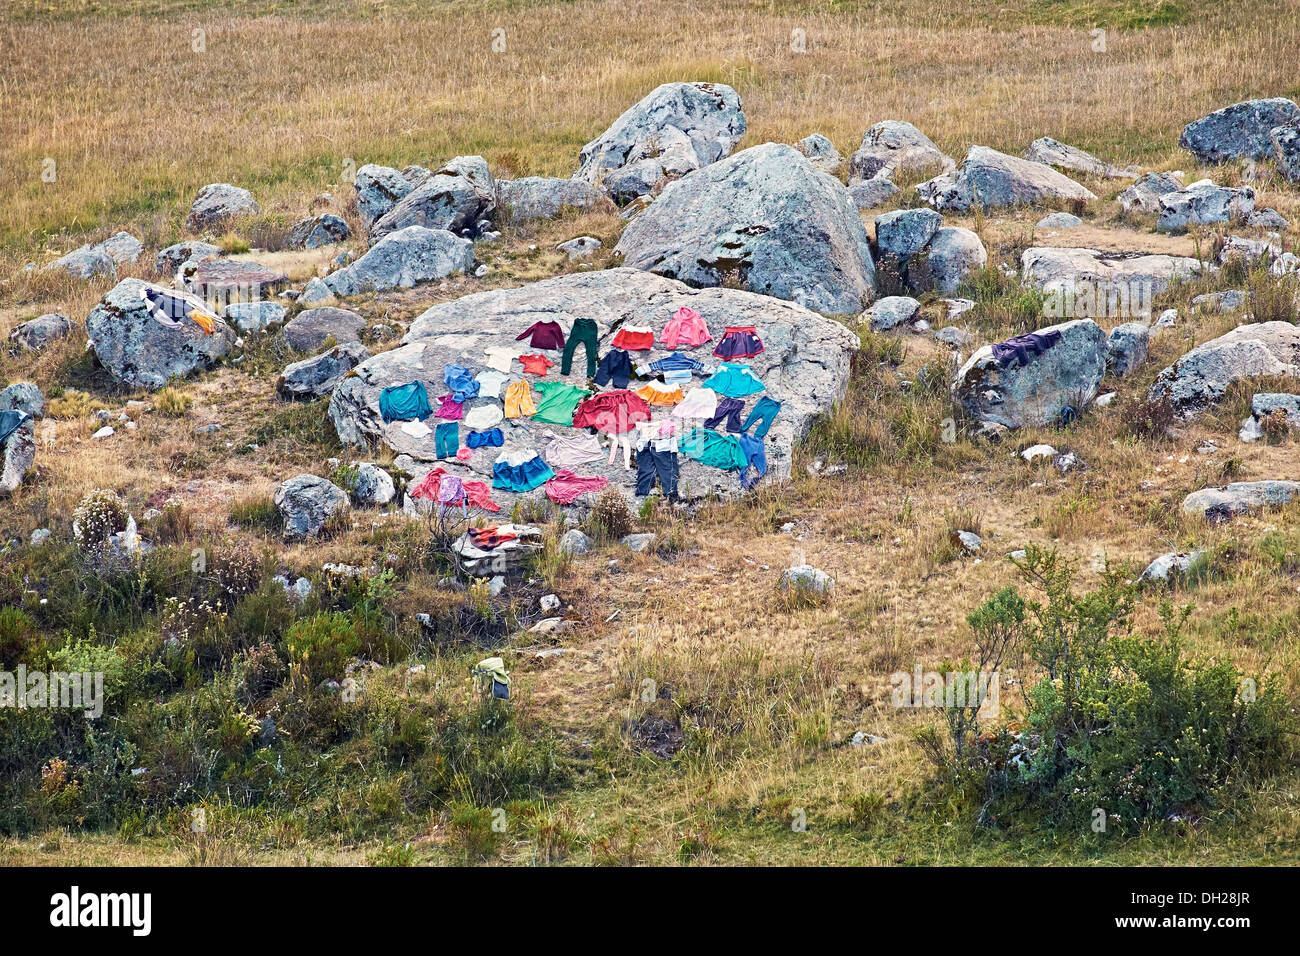 Drying cloths on a rock high up in the Andes, Peru, South America - Stock Image